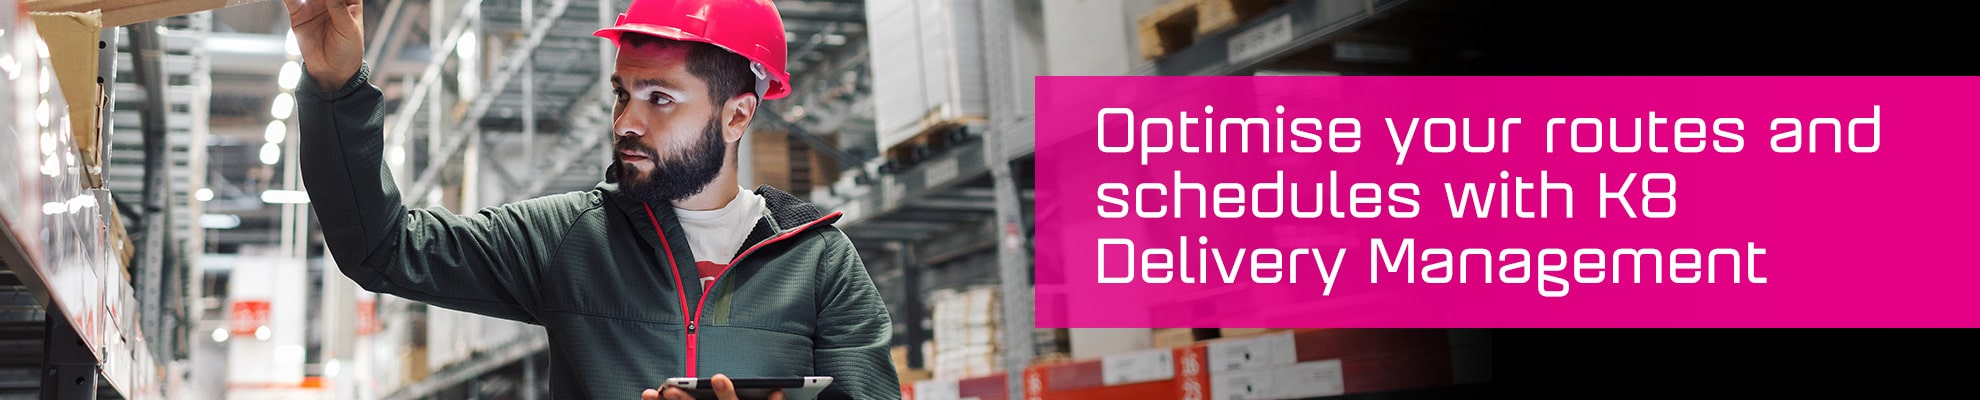 Optimise your routes and schedules with K8 Delivery Management